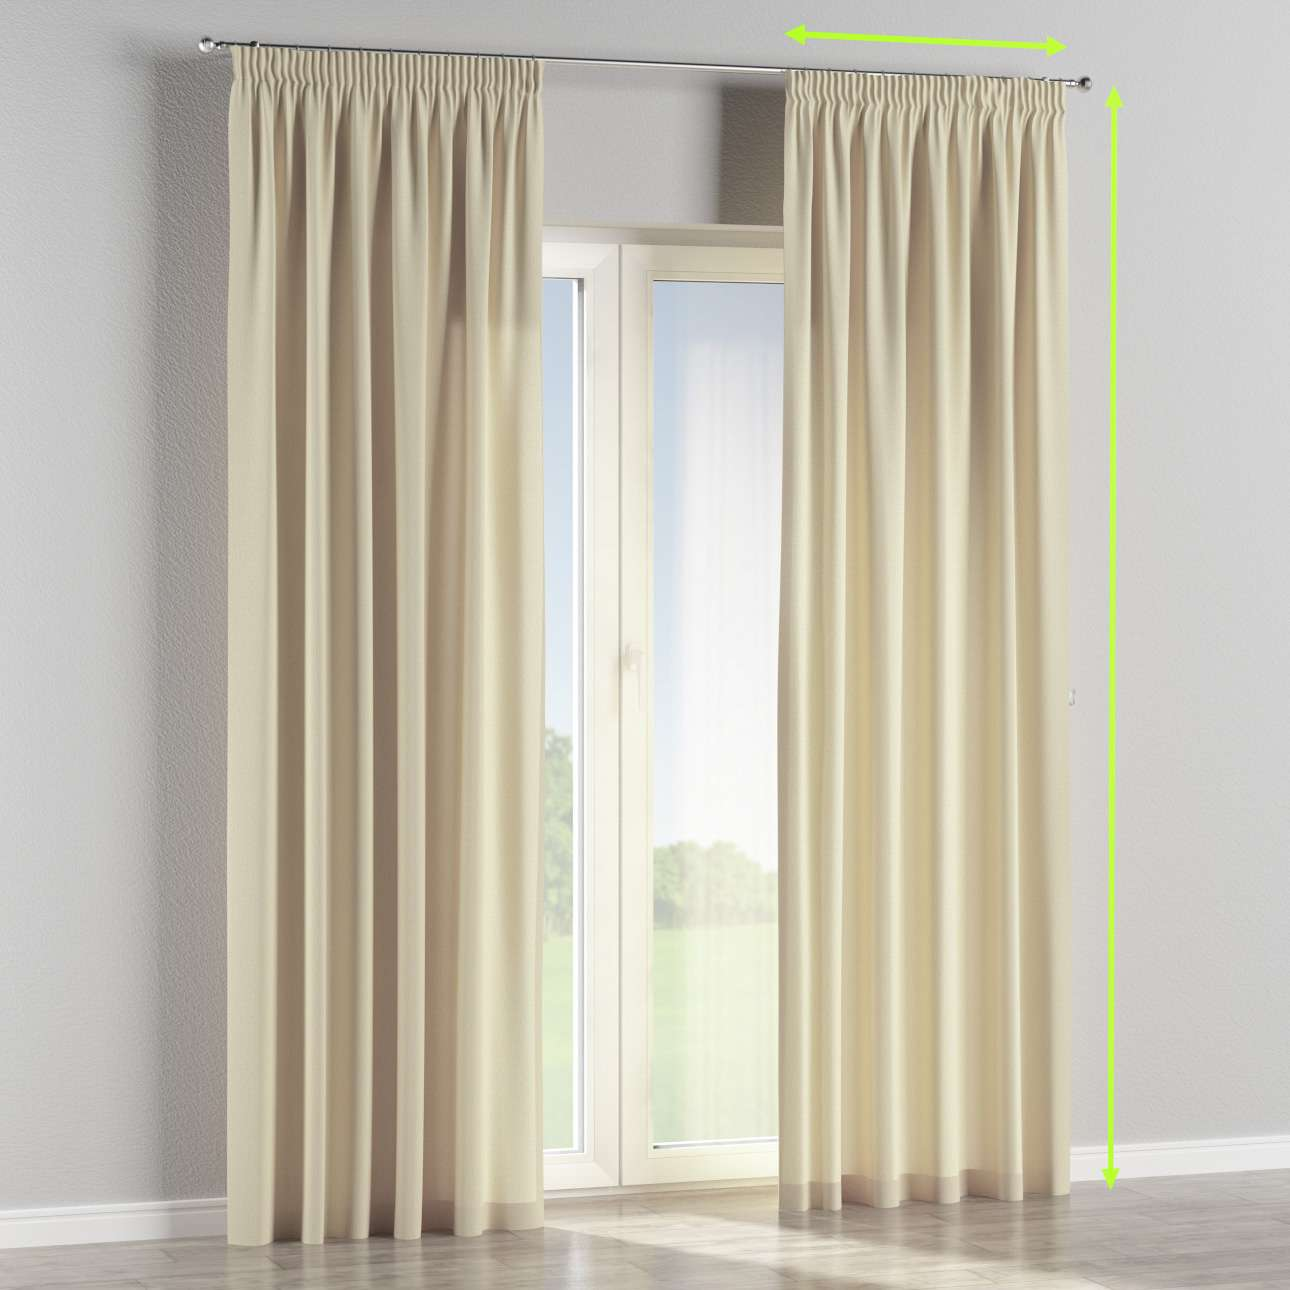 Pencil pleat curtains in collection Chenille, fabric: 702-22